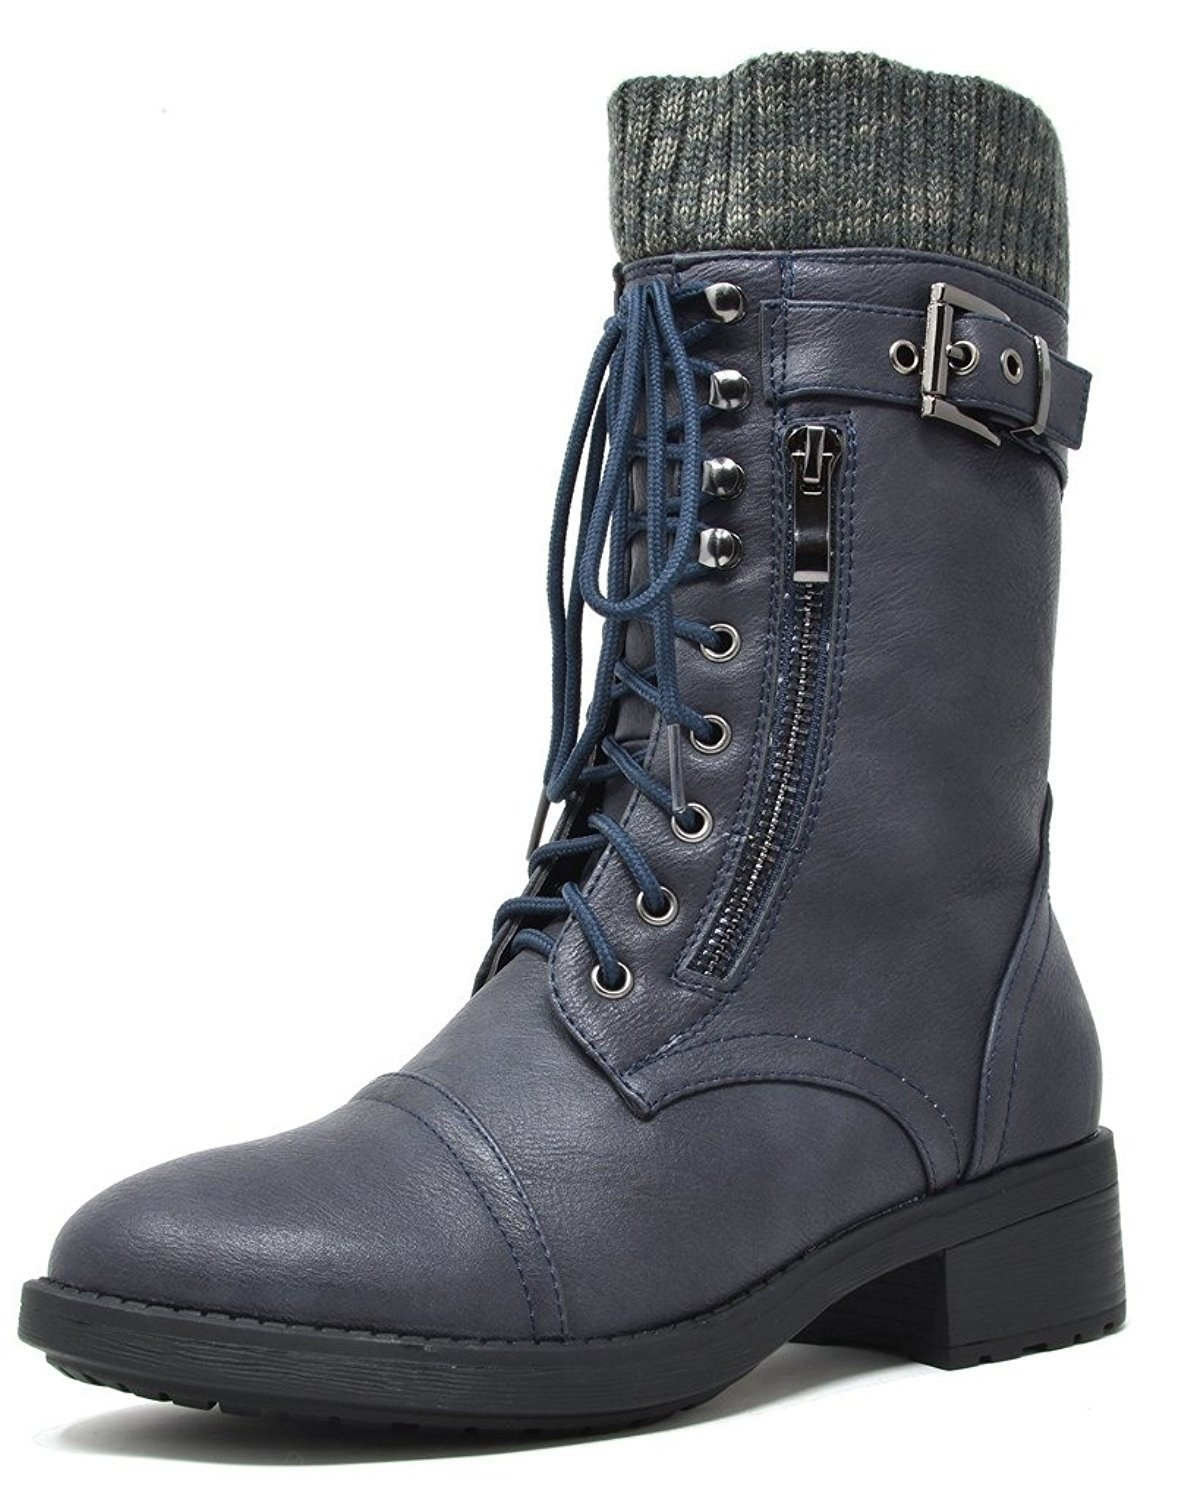 c01f7362c010b 21 Of The Best Winter Boots And Snow Boots You Can Get On Amazon